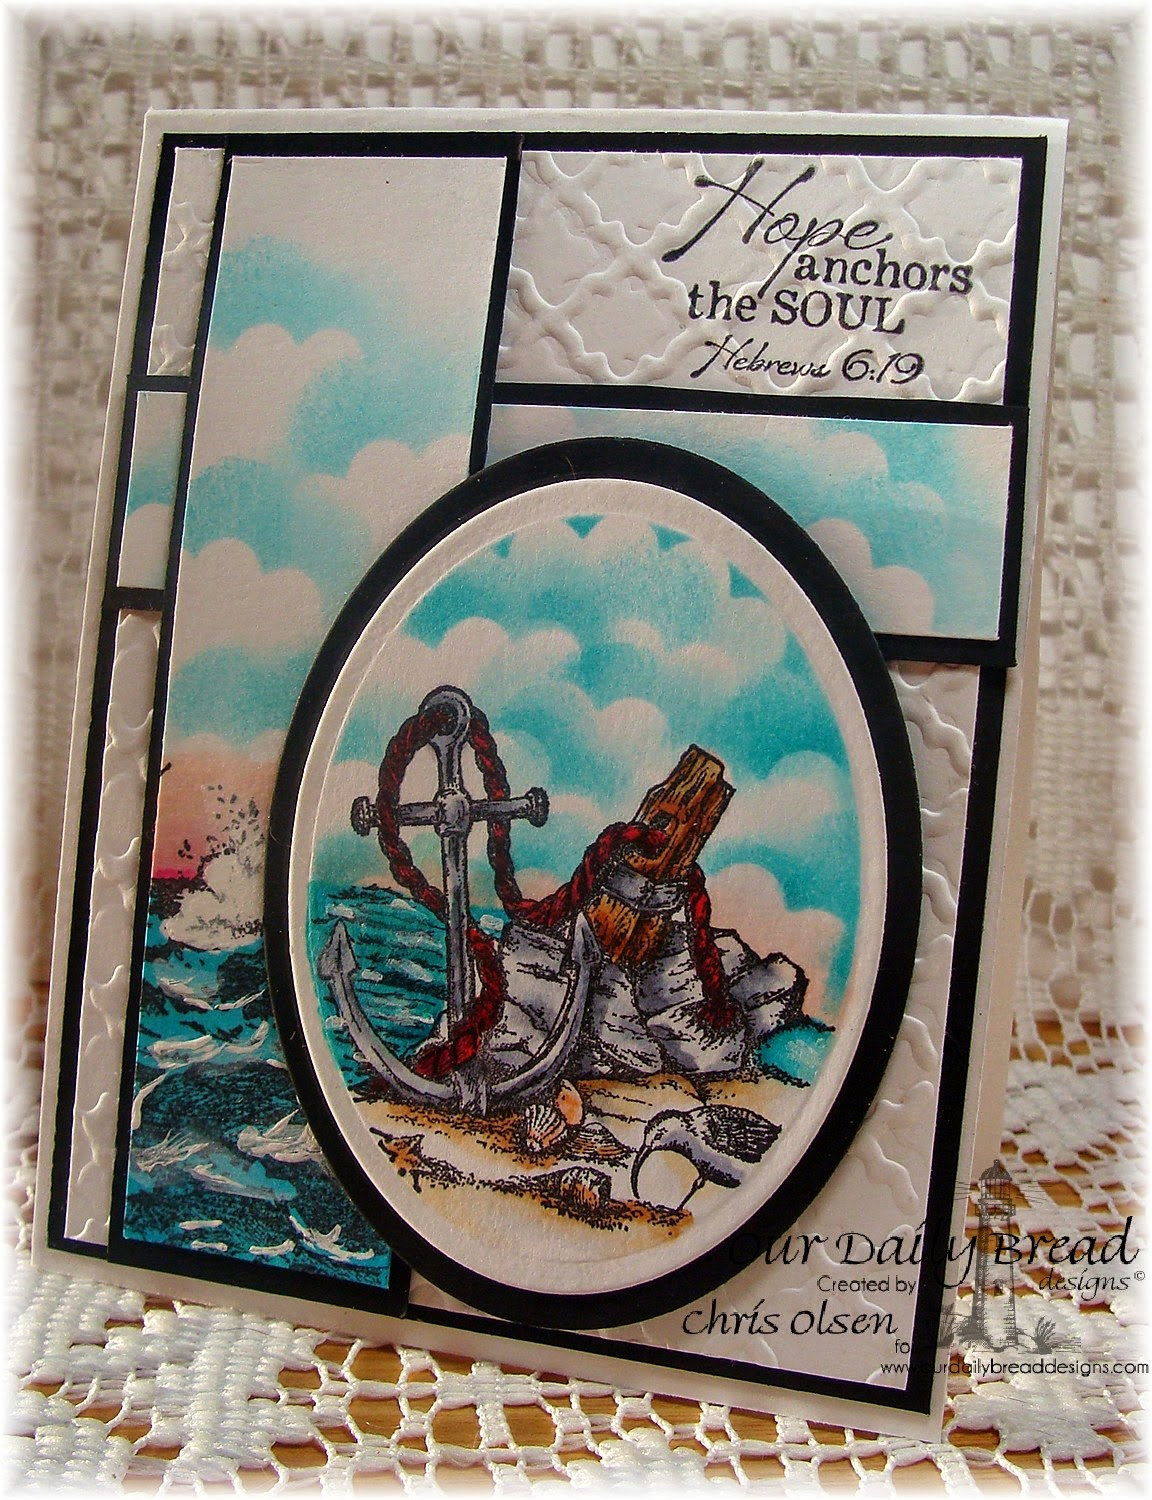 Our Daily Bread Designs, Anchor the Soul, The Mighty Sea, designer-Chris Olsen